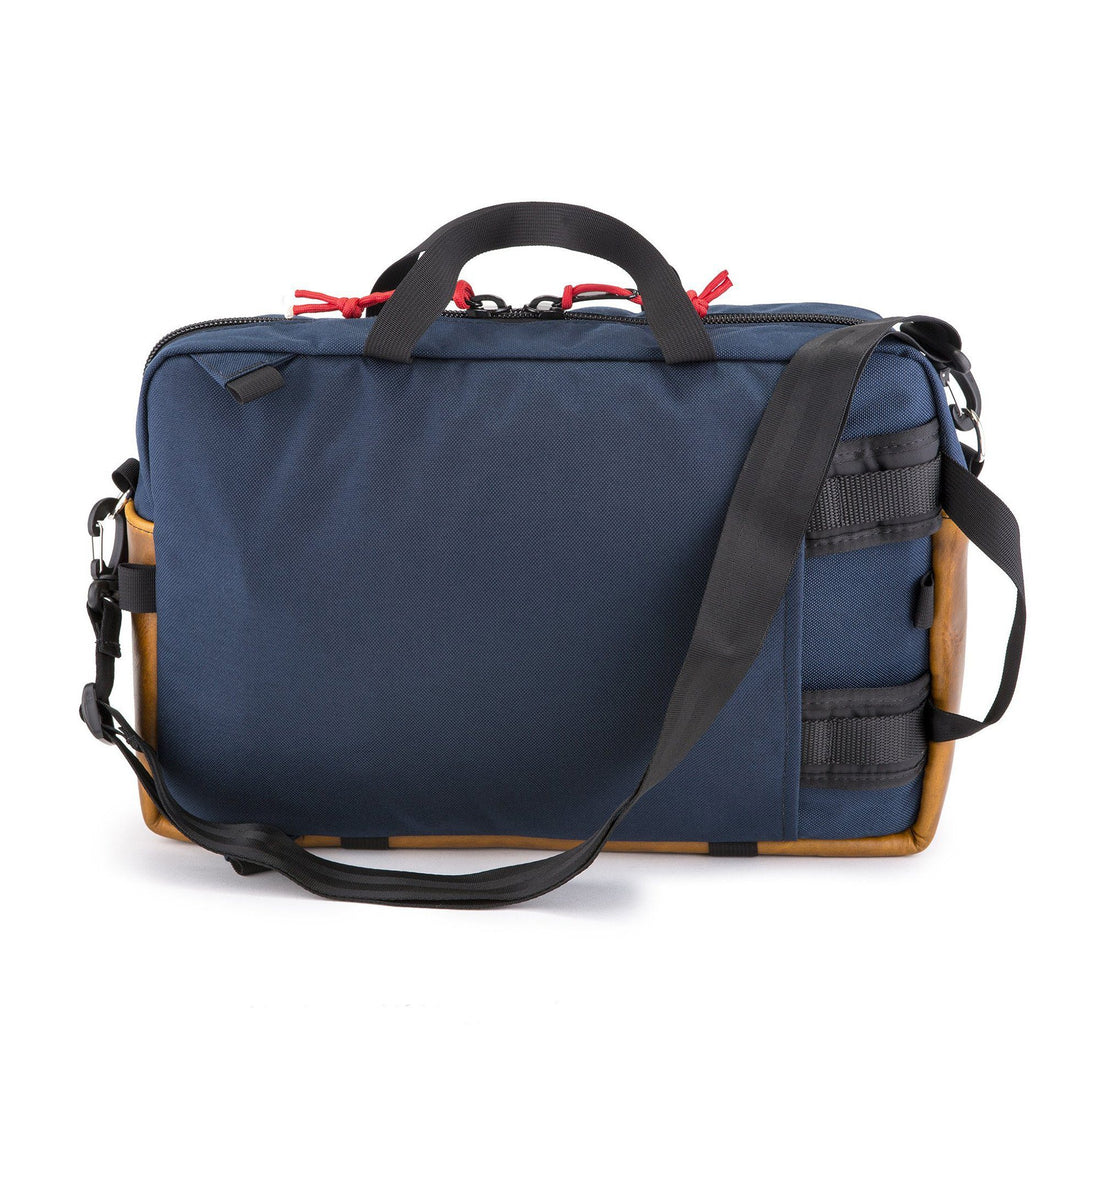 Topo Designs Mountain Briefcase - Bags/Luggage - Iron and Resin